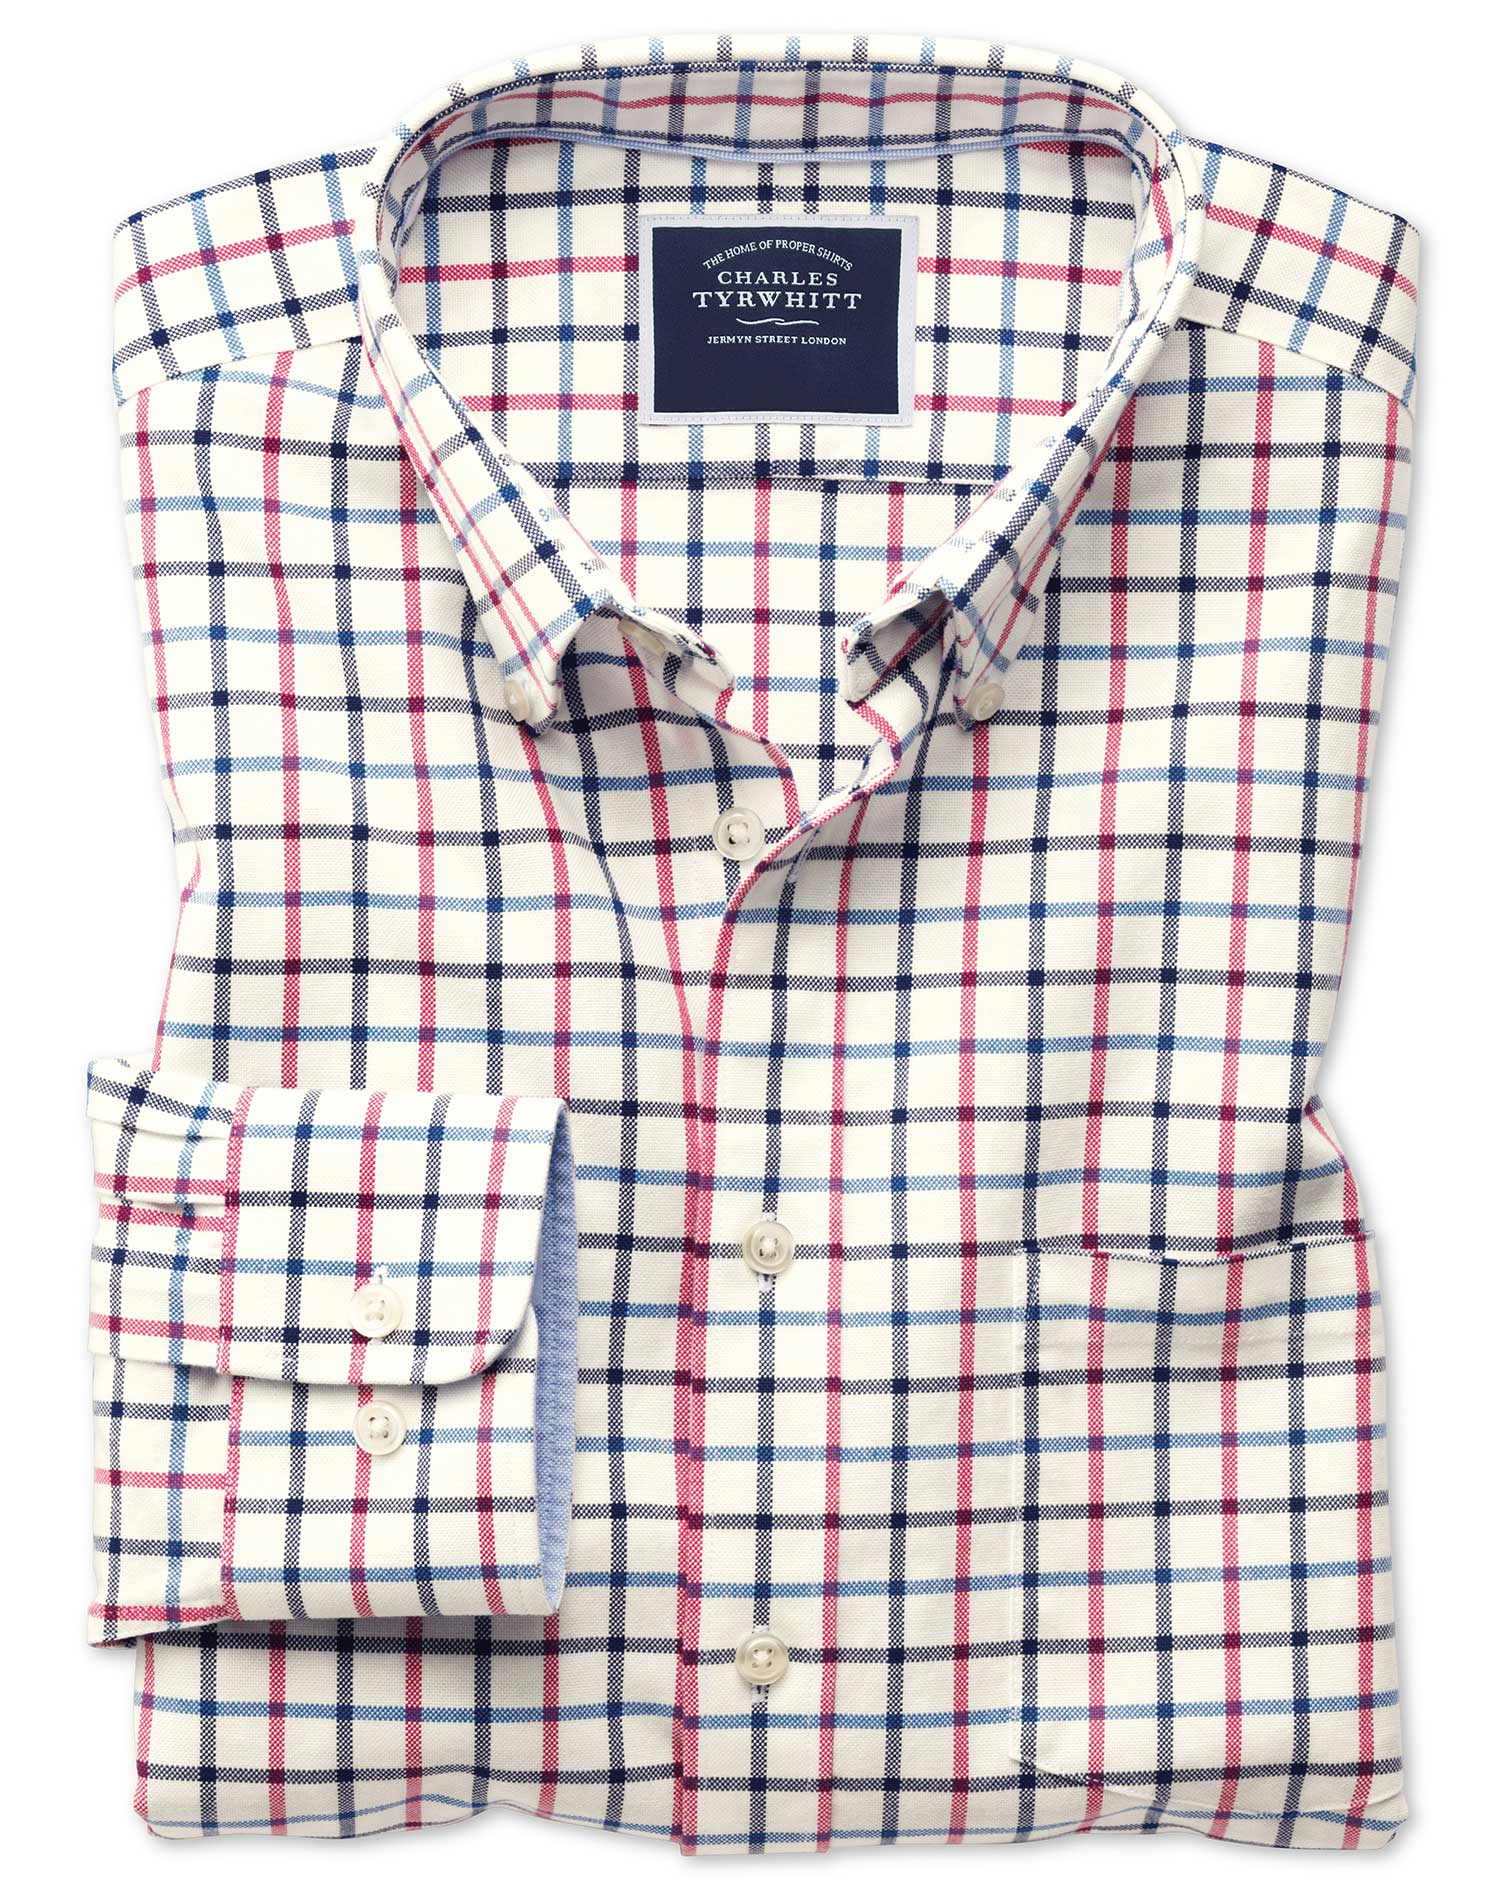 Classic Fit Button-Down Washed Oxford Navy and Pink Check Cotton Shirt Single Cuff Size XXL by Charl